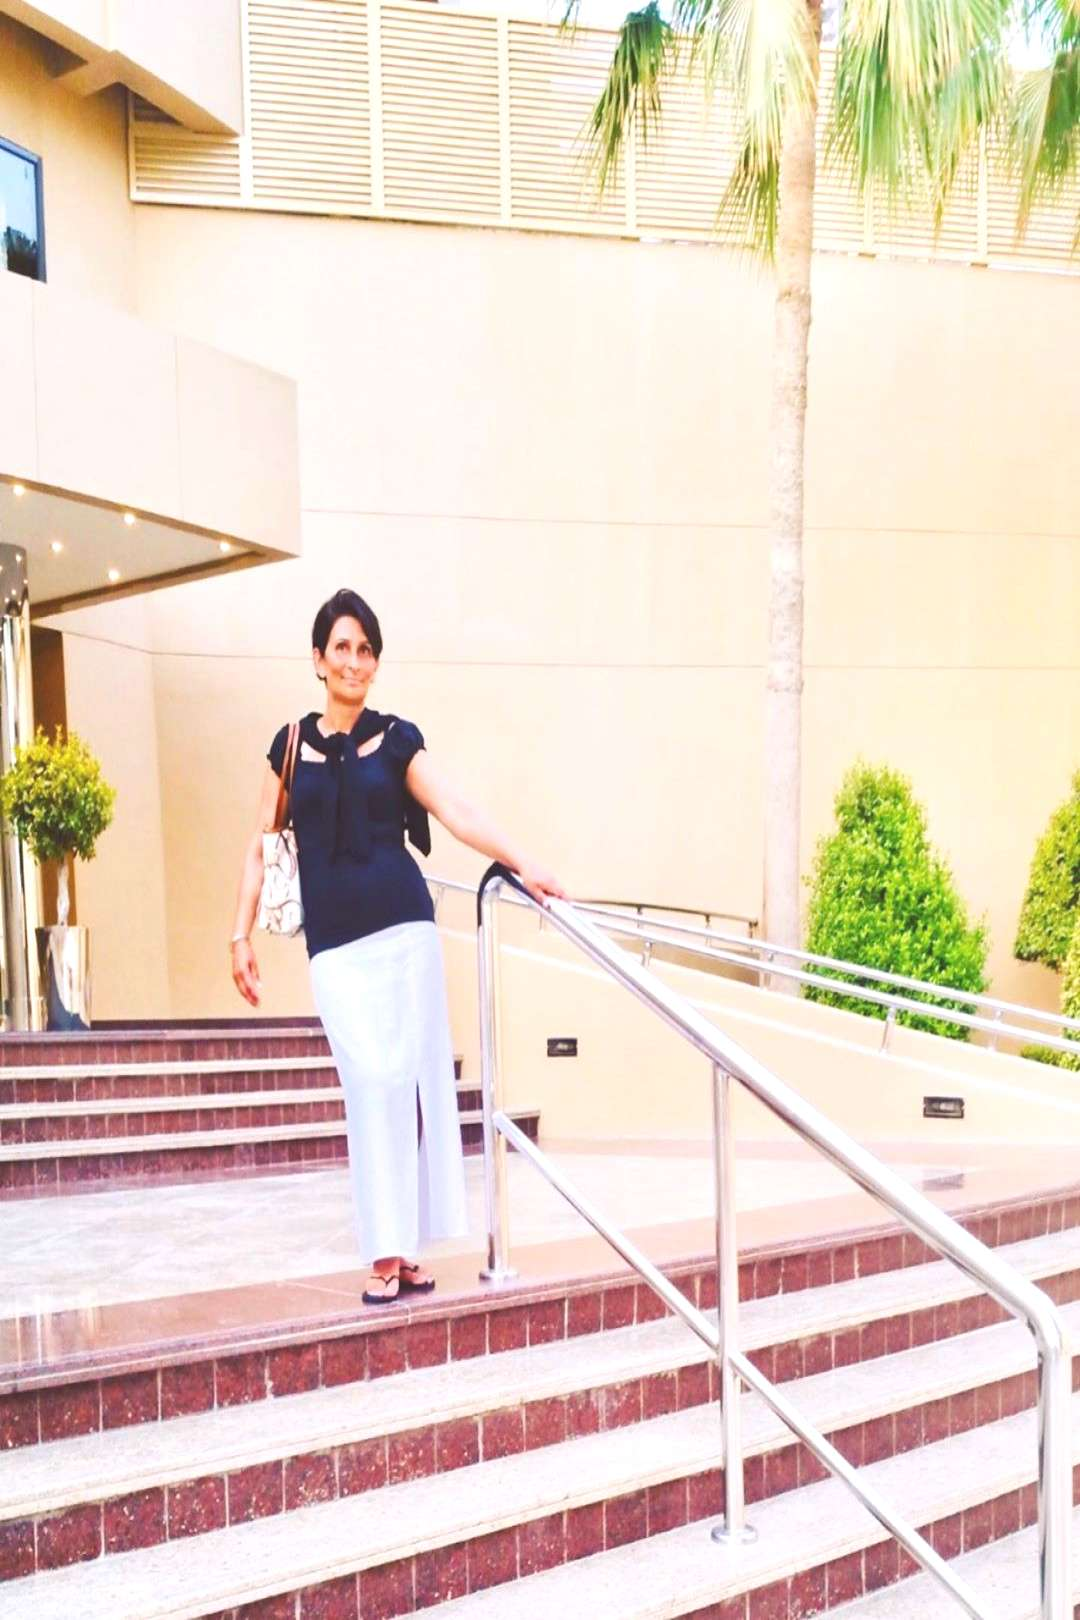 Preeti Singh on June 07 2020 1 person standing shoes and outdoor